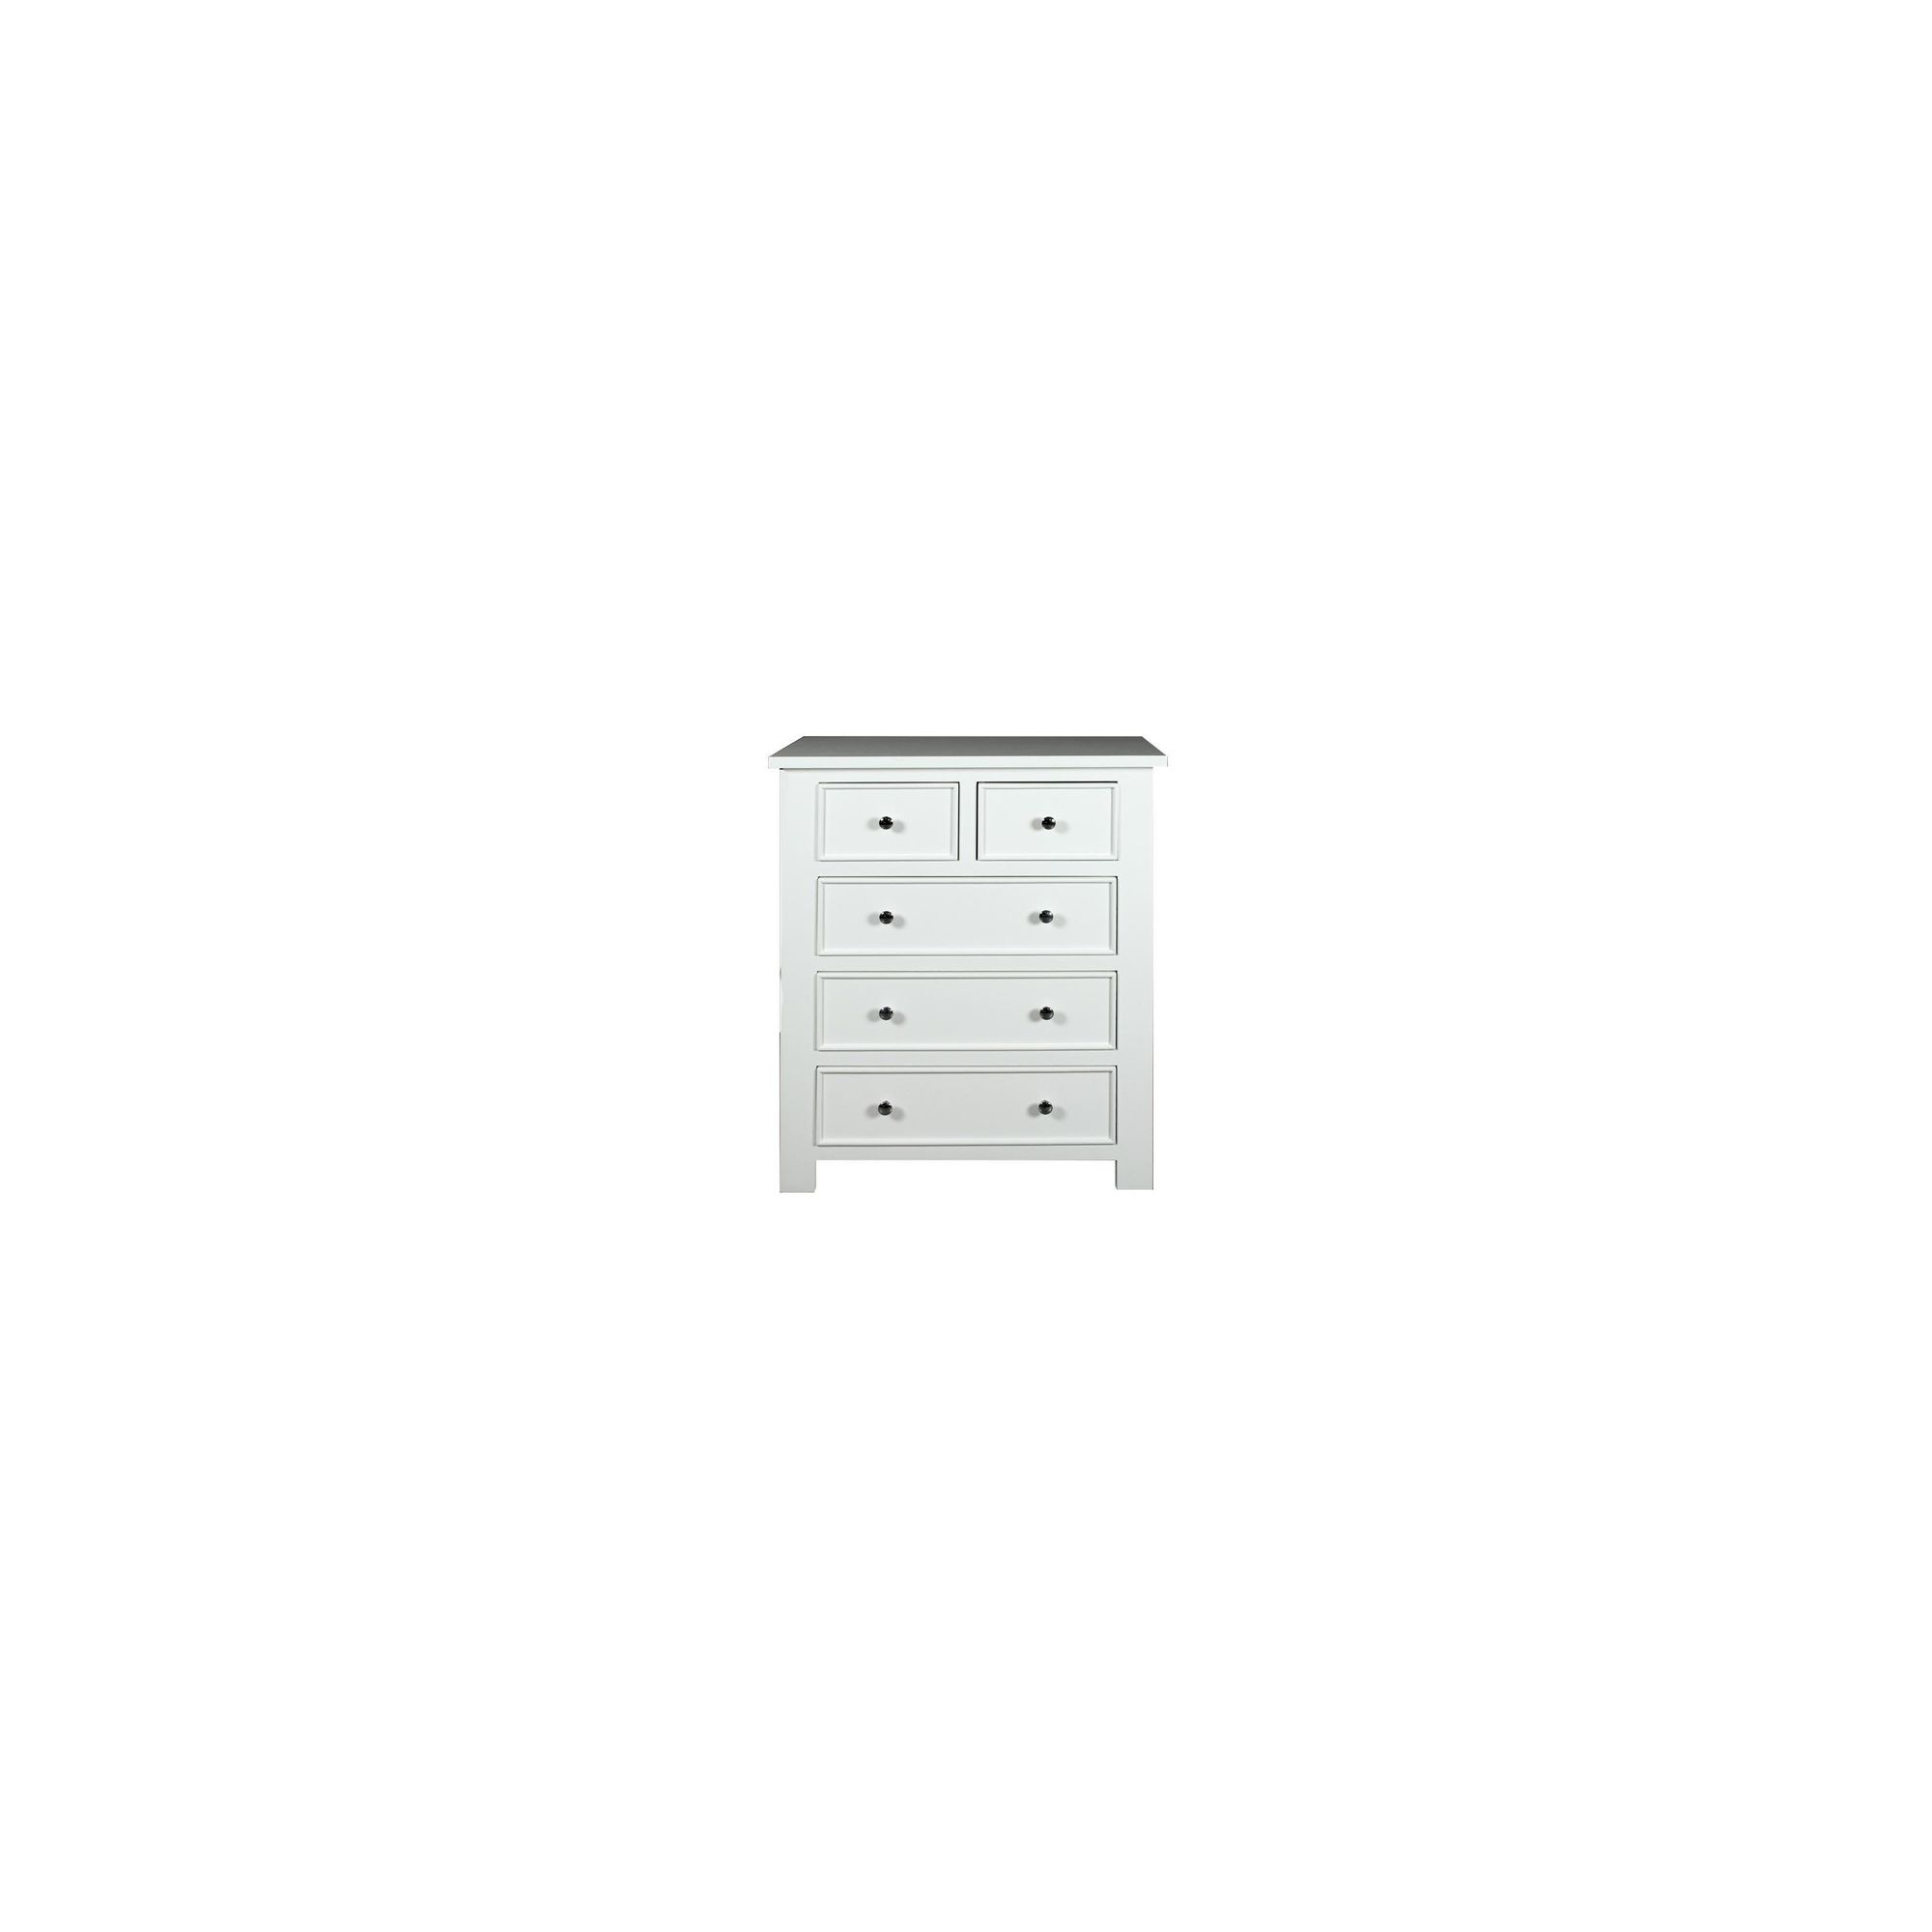 Alterton Furniture Breton 2 over 3 Drawer Chest at Tesco Direct